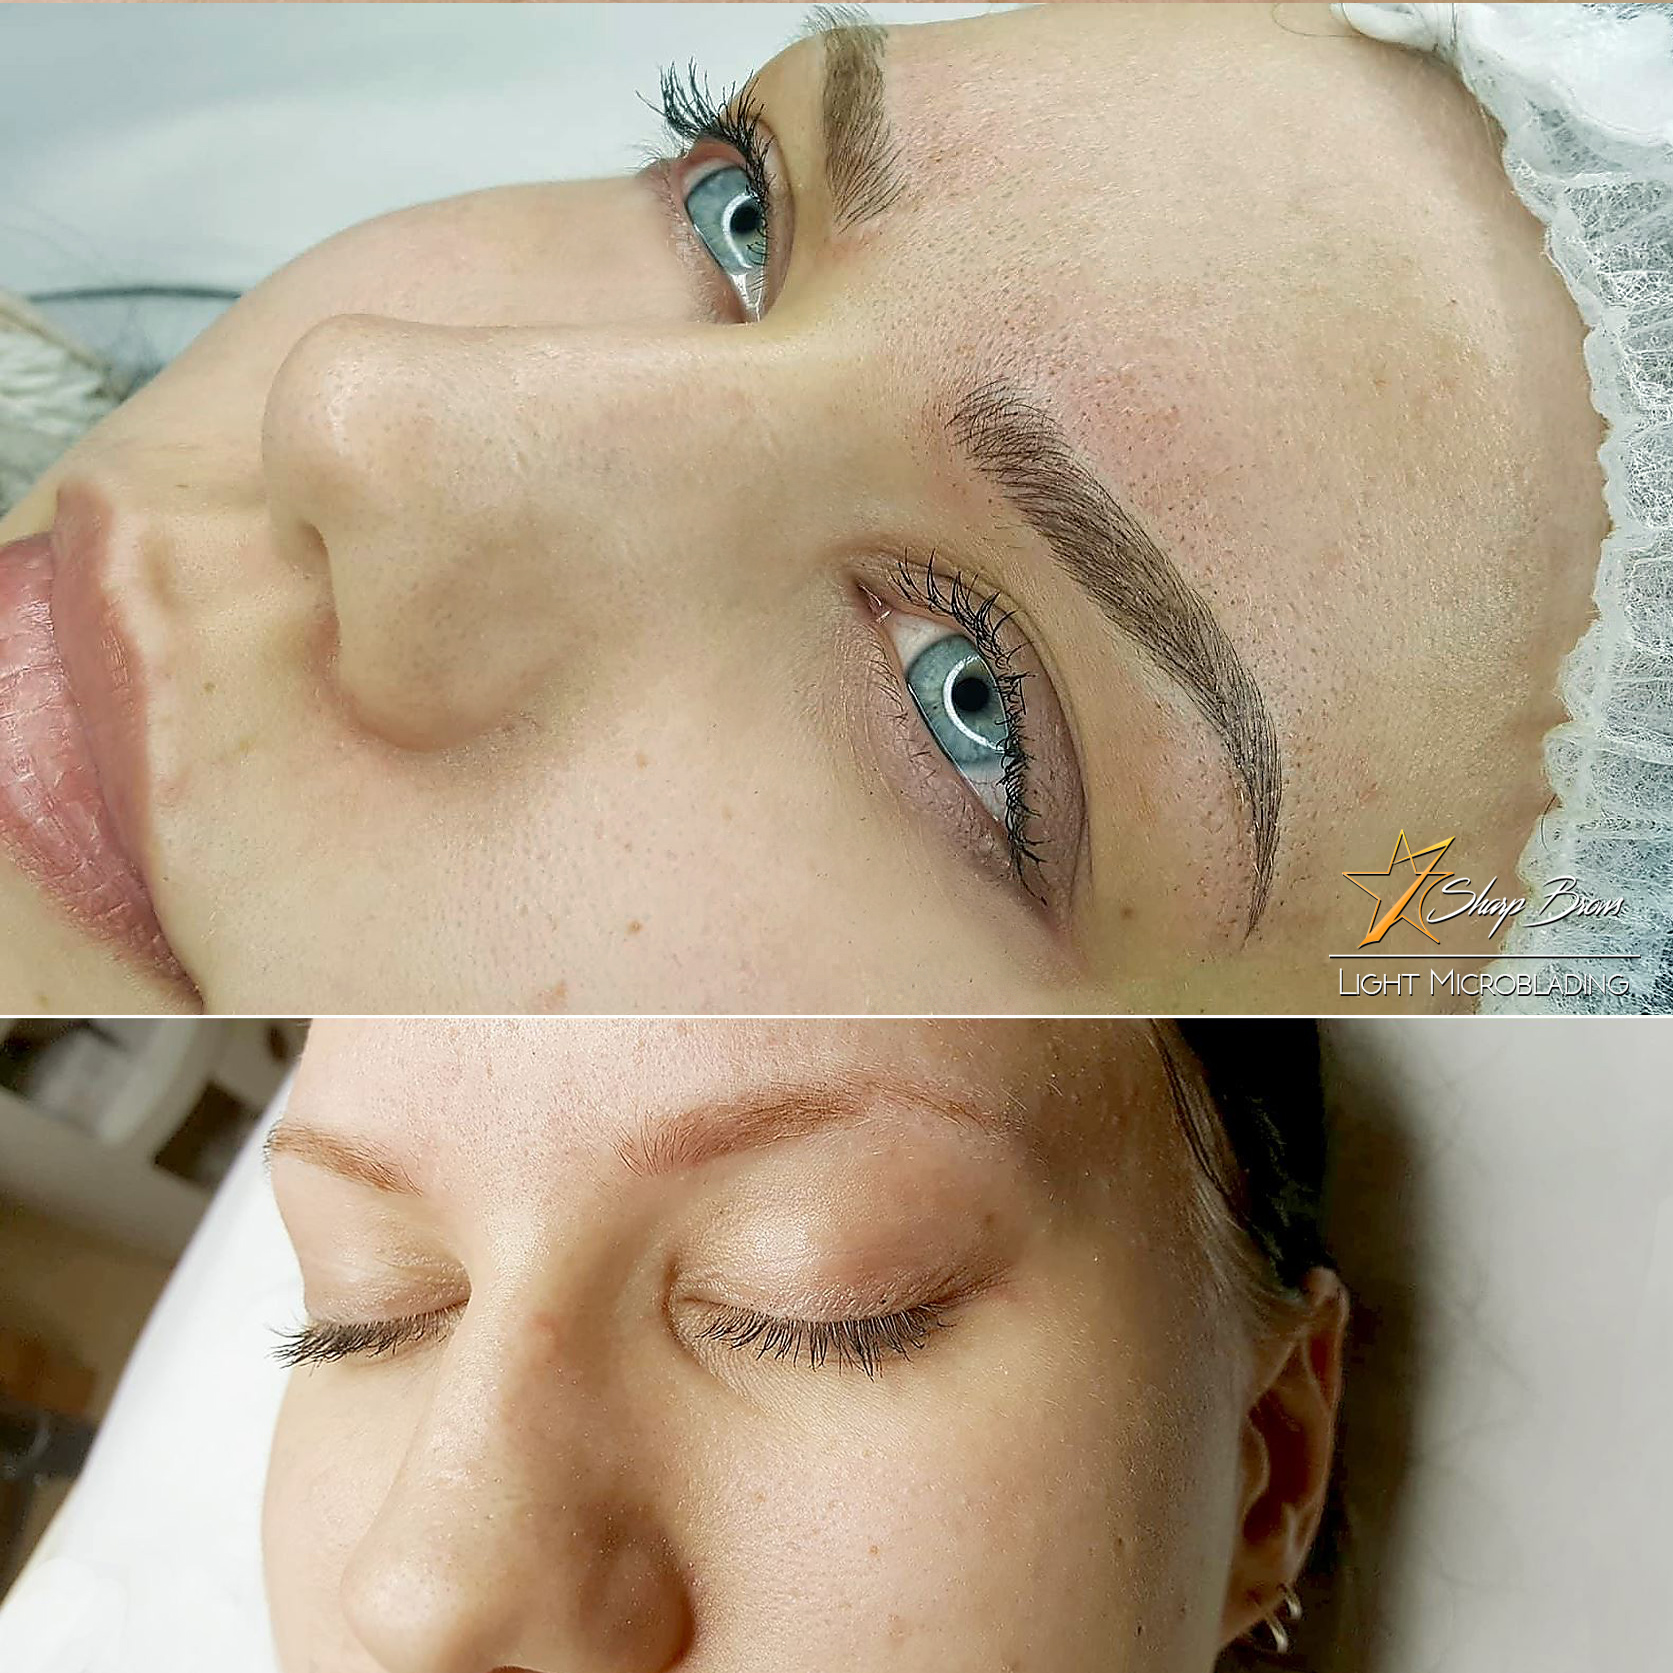 Correctly made SharpBrows Light microblading does not only bring out and brighten the eyes, it changes the overall appearance of the face. Clients say that they have lost tens of years when it comes toi the age they look like.